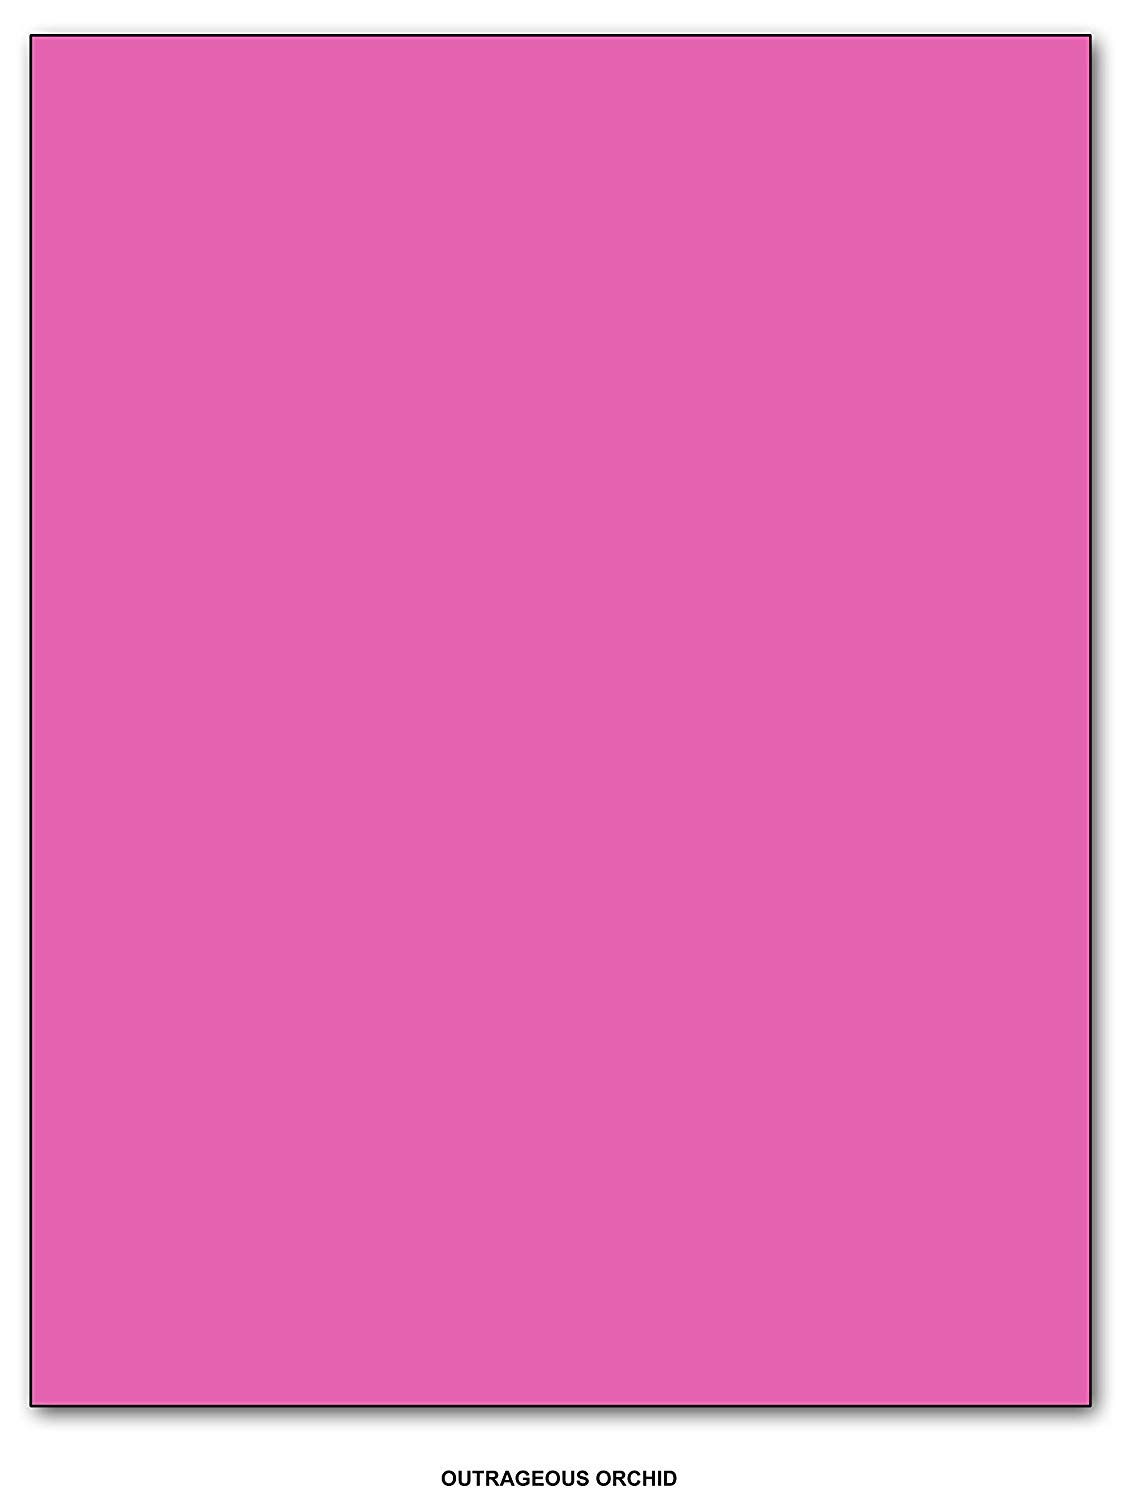 get quotations bright color paper regular 24lb size 85 x 55 half letter size